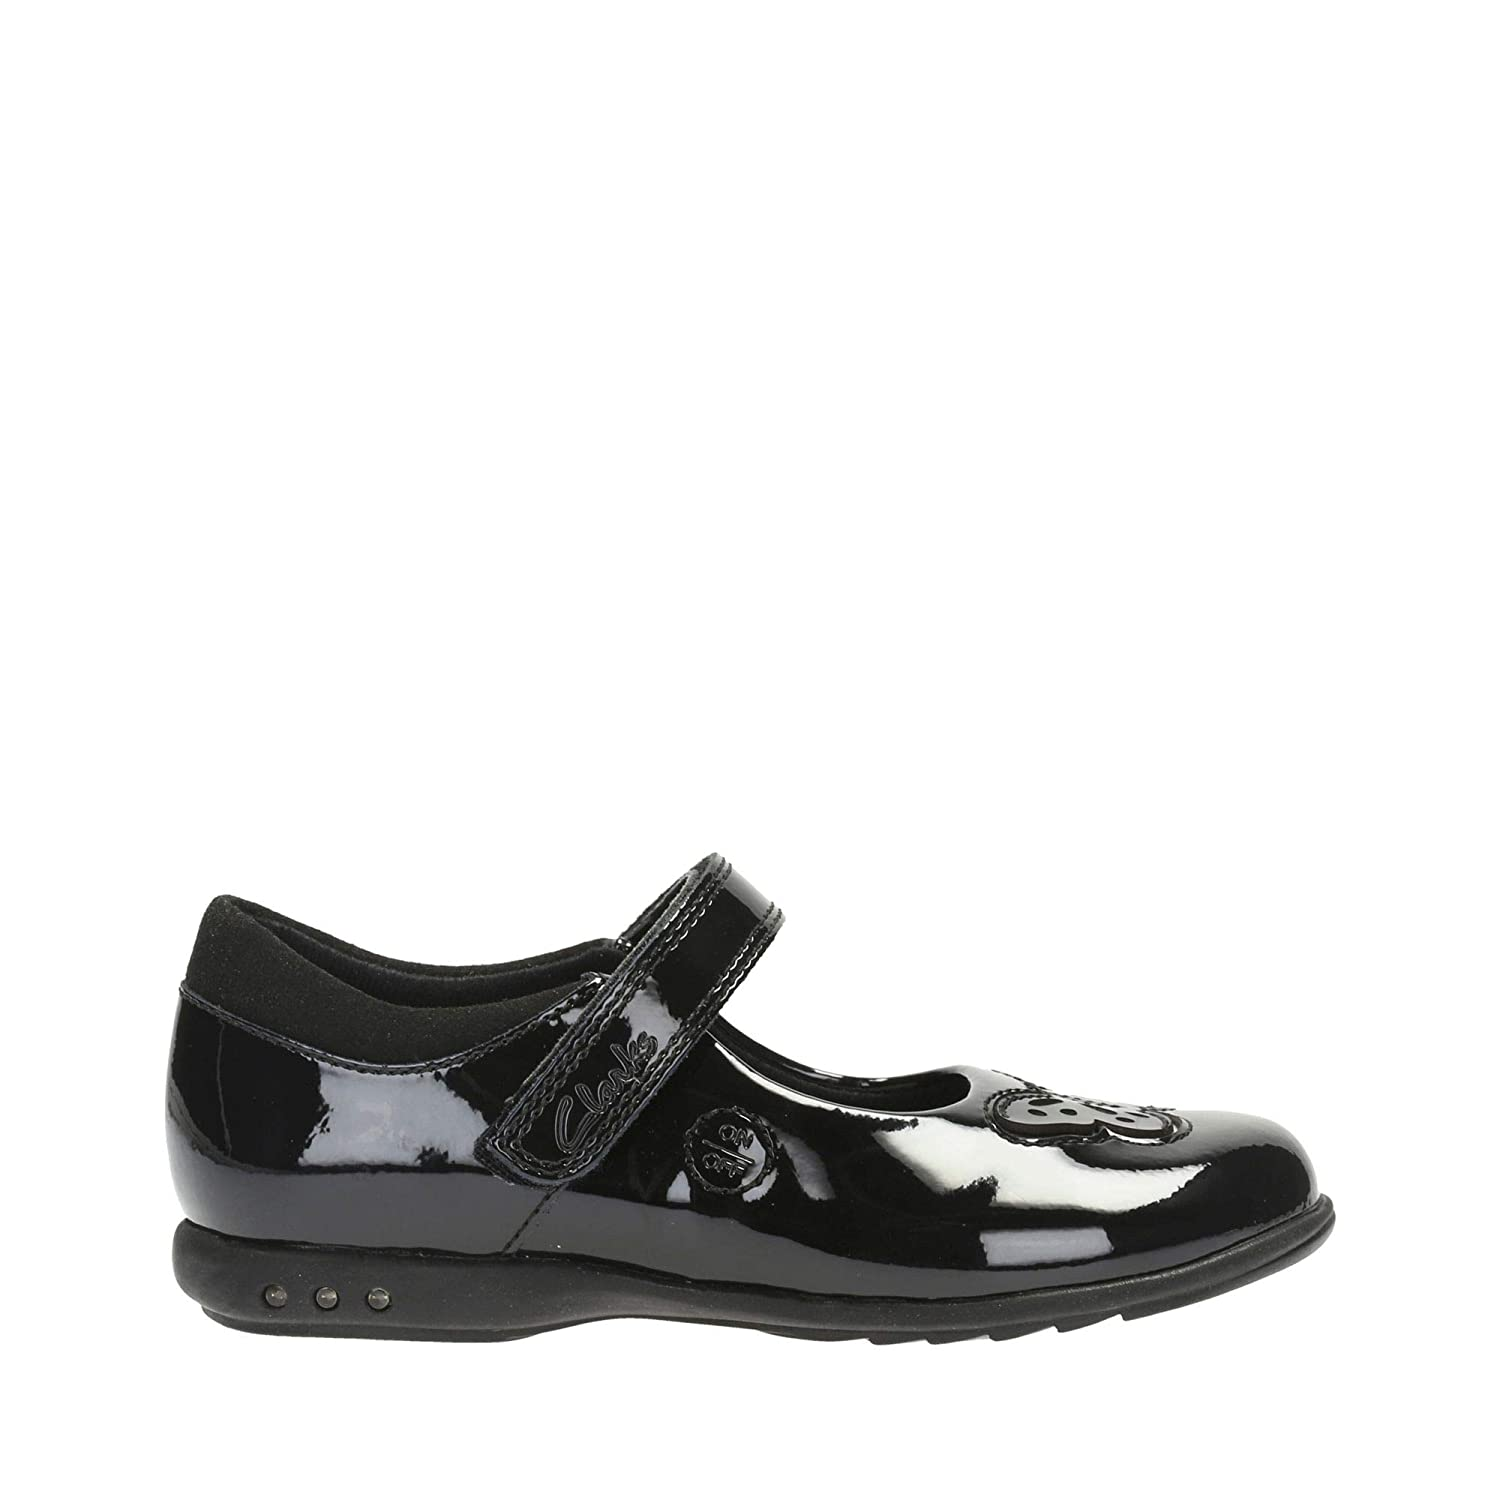 4f43179dbc750 Clarks Trixi Rose Infant Coated Leather Shoes in Black Patent:  Amazon.co.uk: Shoes & Bags